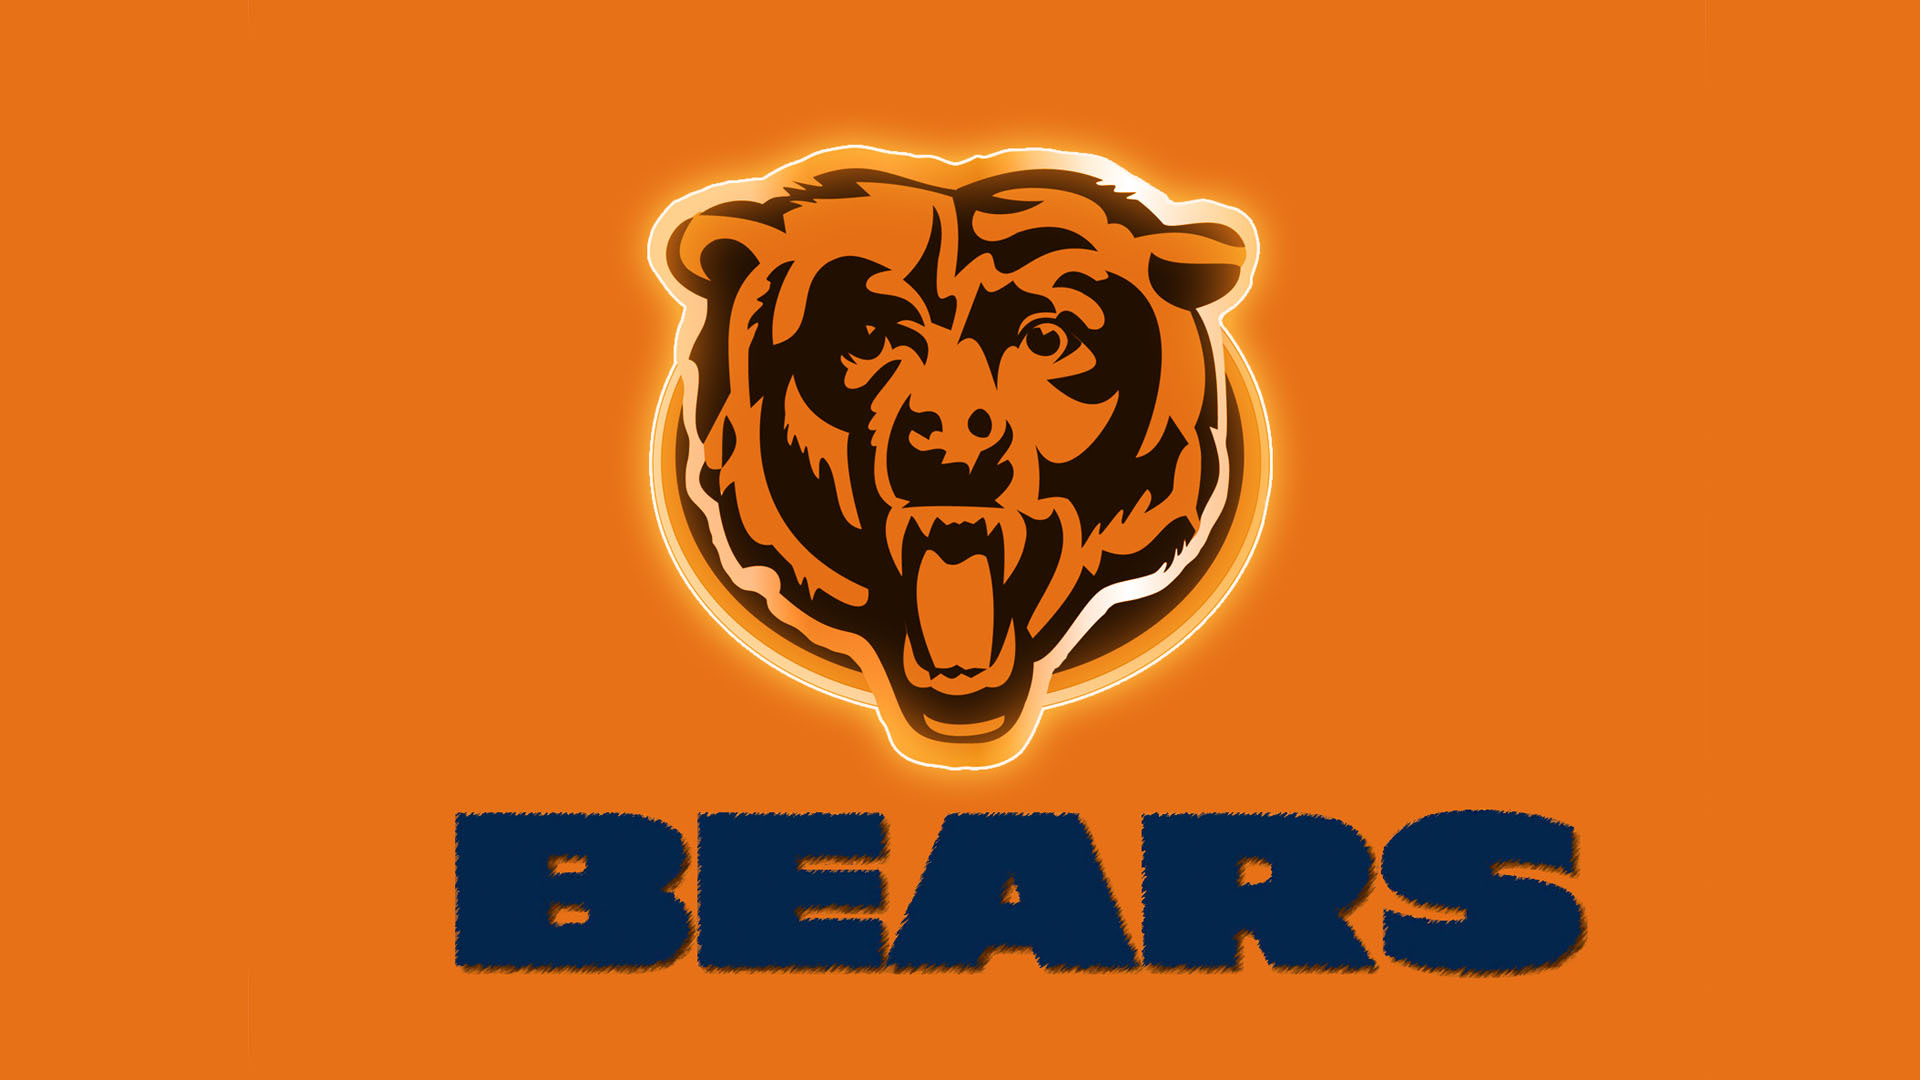 Chicago Bears Wallpapers Images Photos Pictures Backgrounds 1920x1080